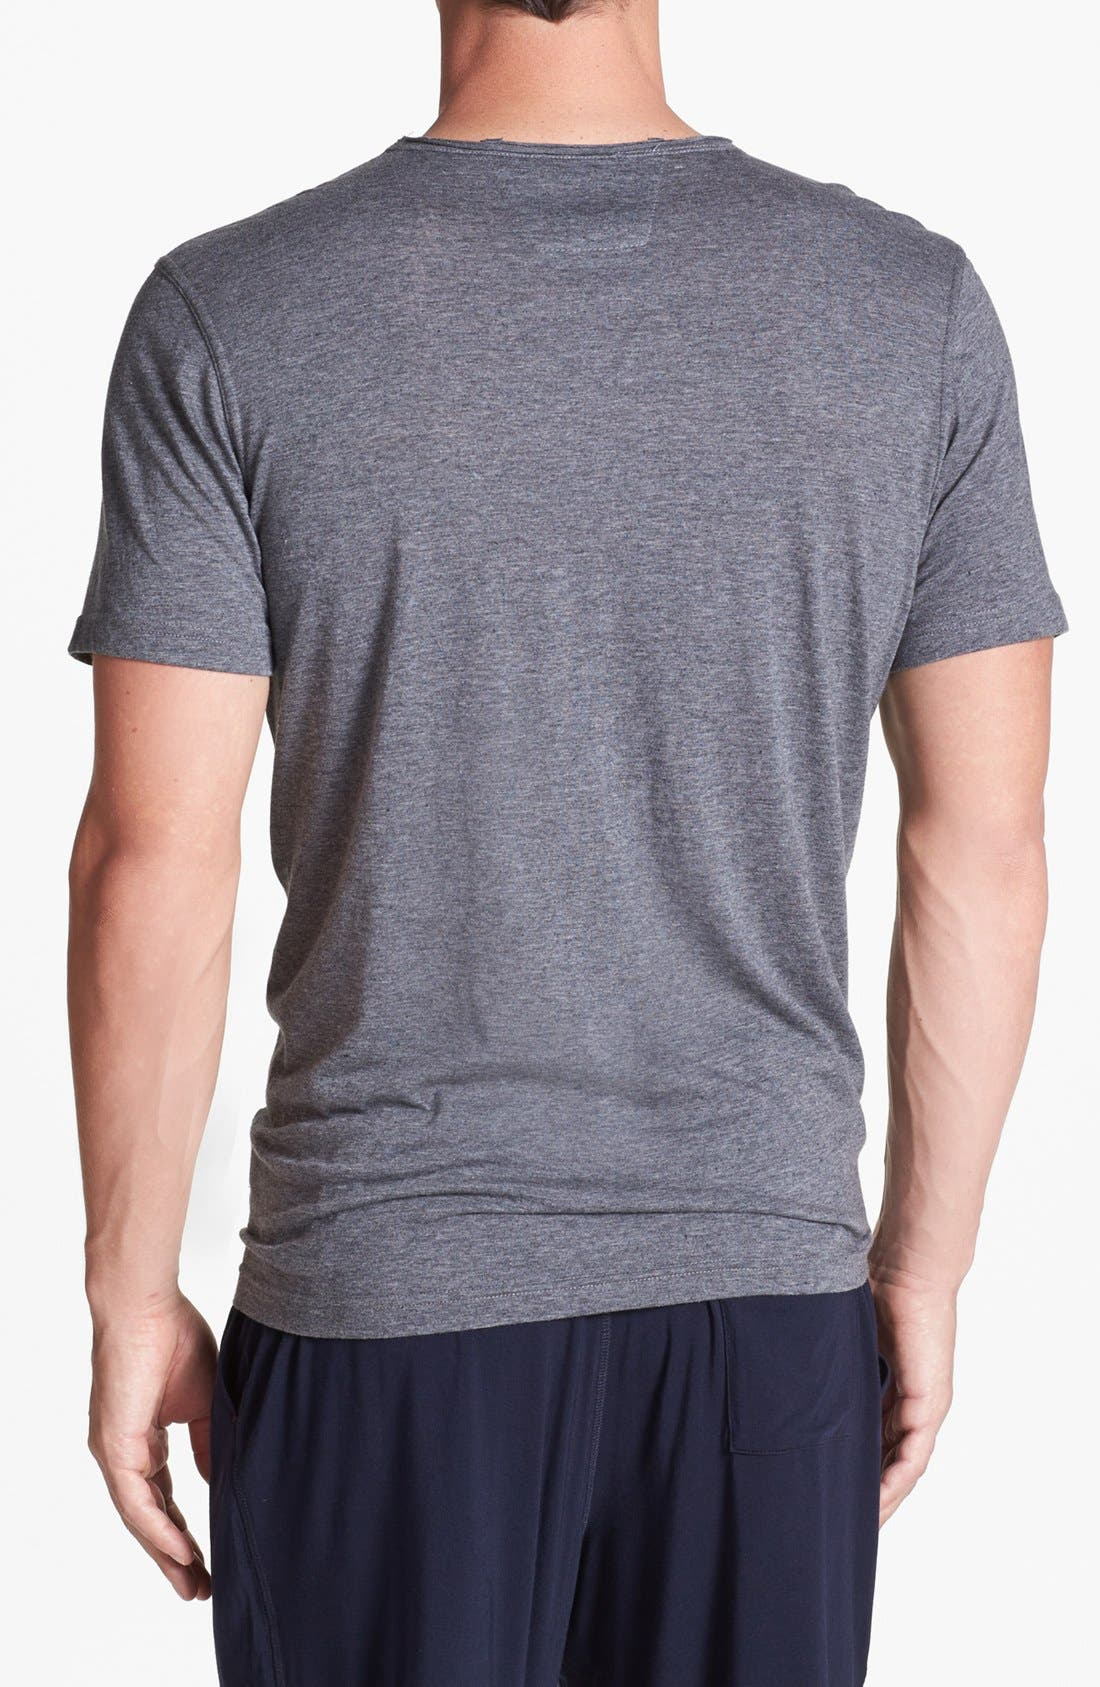 Alternate Image 2  - Daniel Buchler Cotton Blend V-Neck T-Shirt